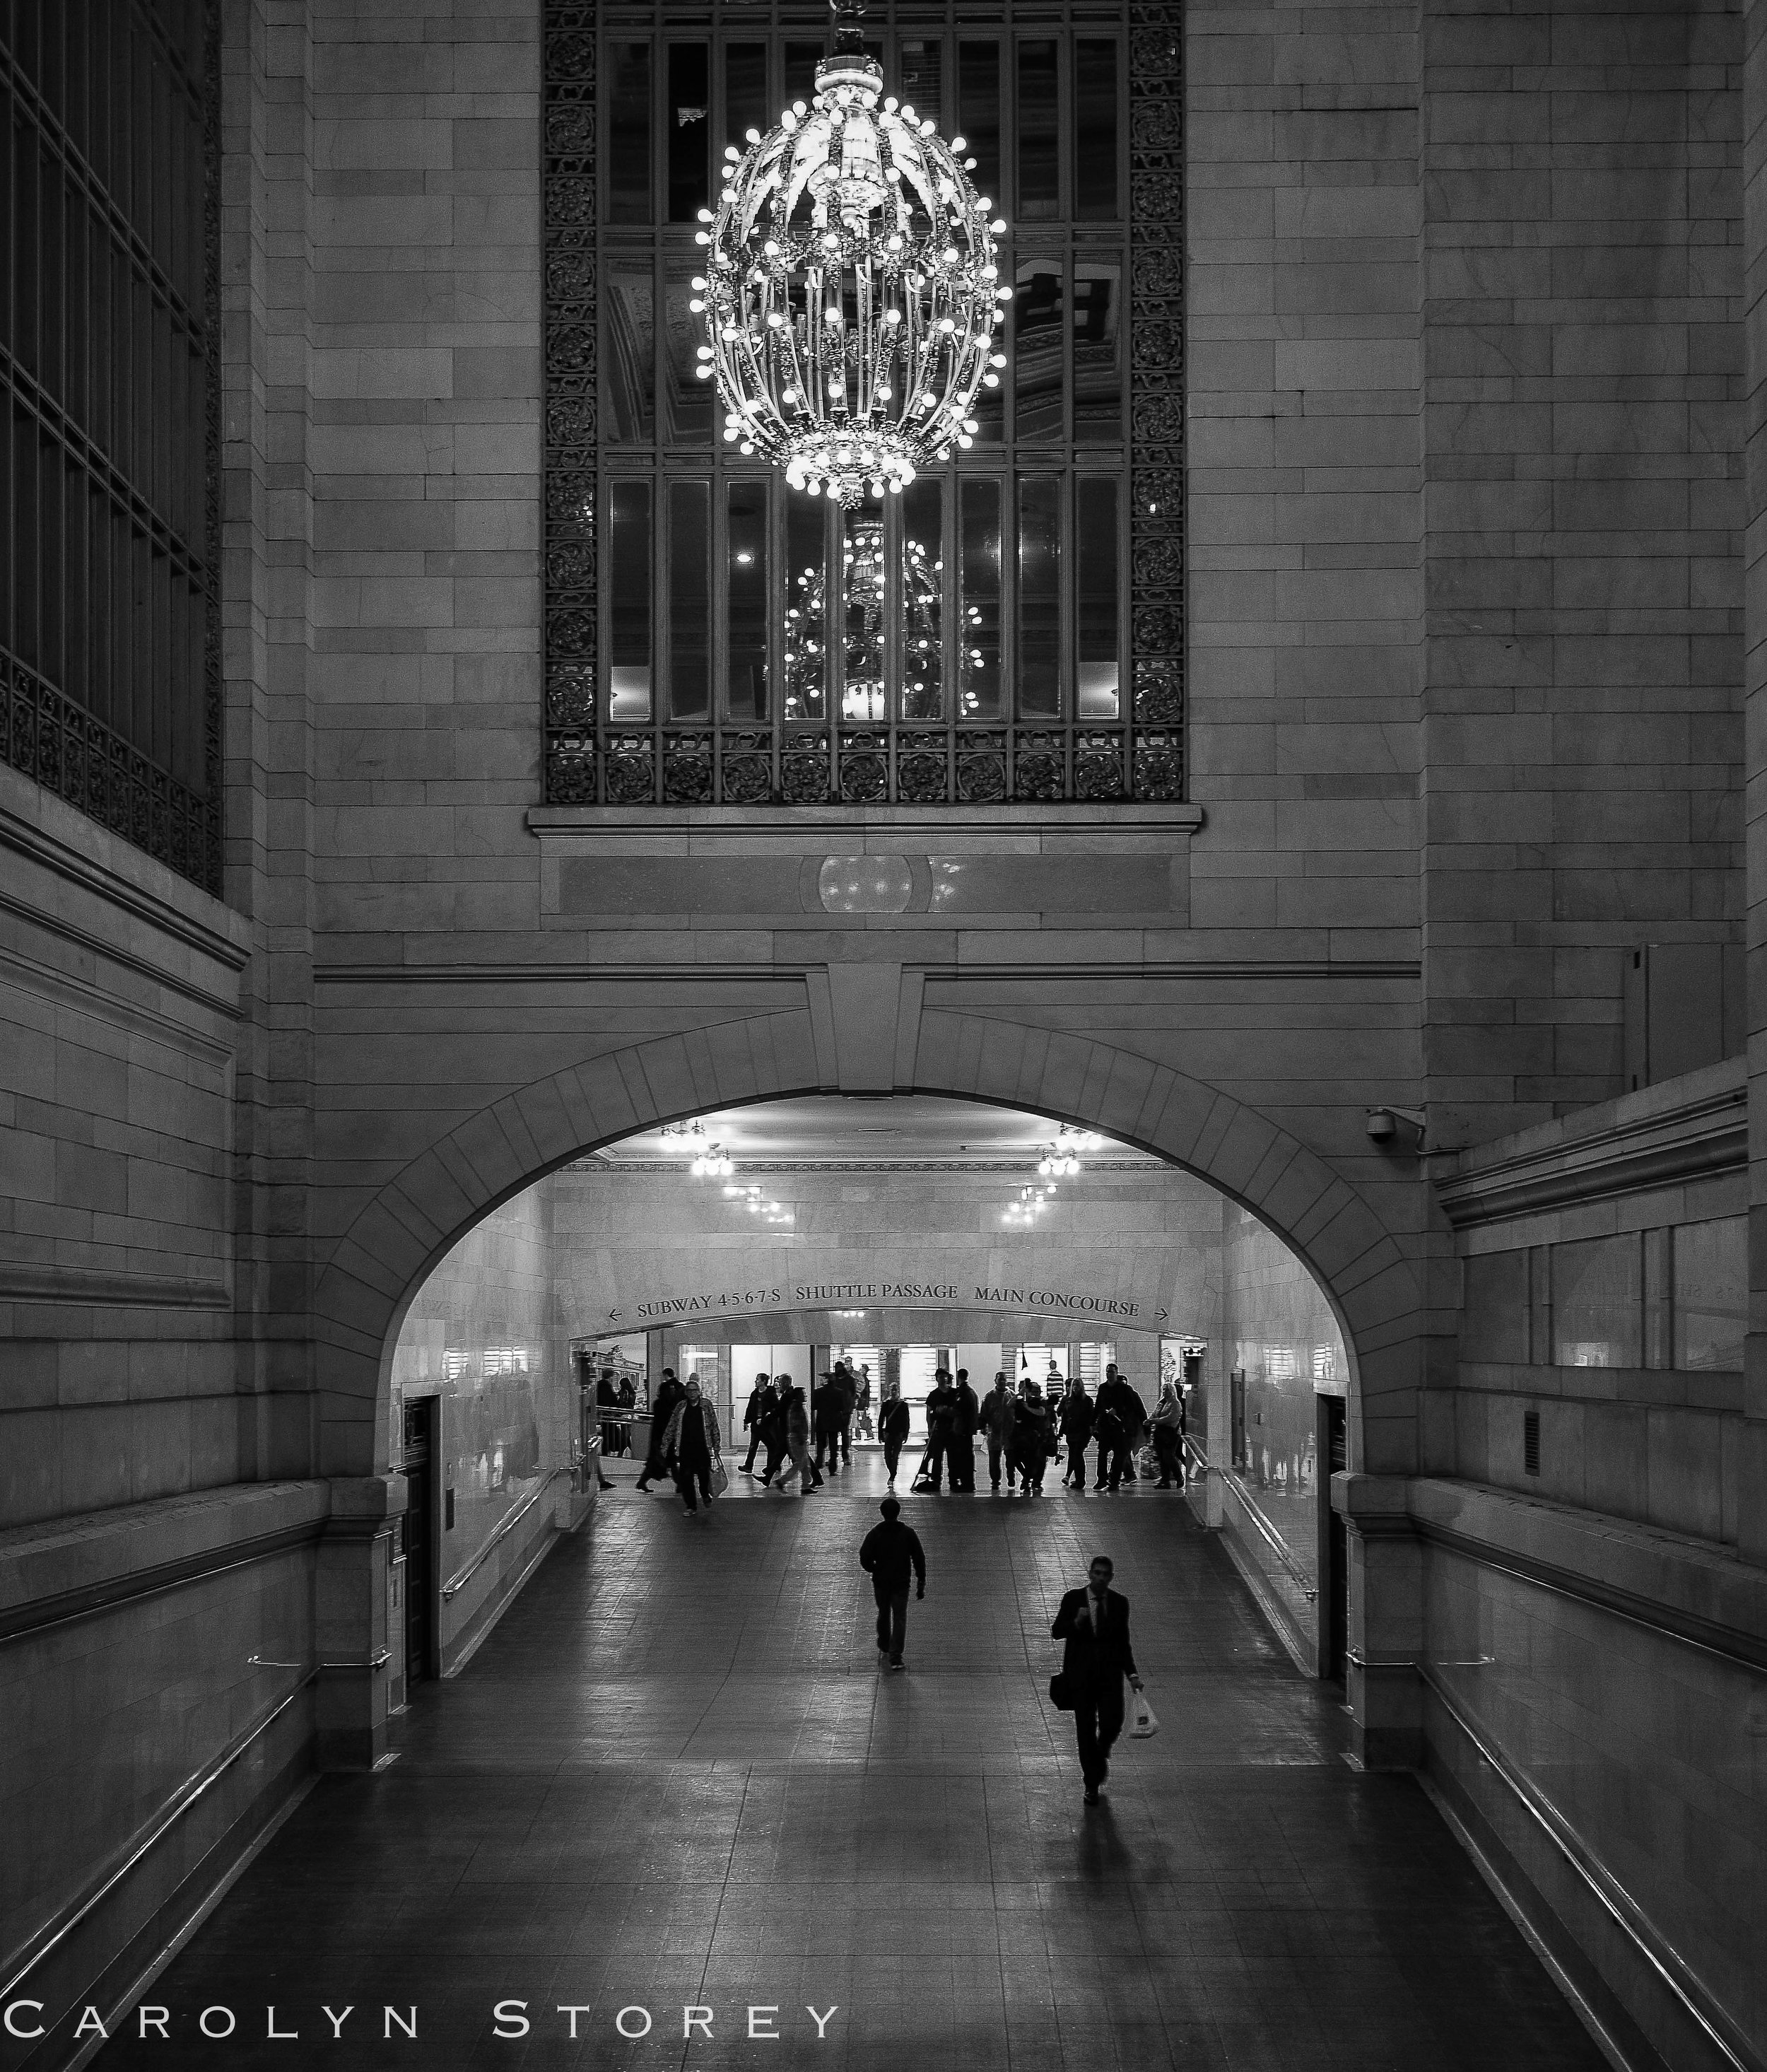 Grand Central Station is gorgeous with its marble, chandeliers and beautiful architecture. The best place to people watch too!